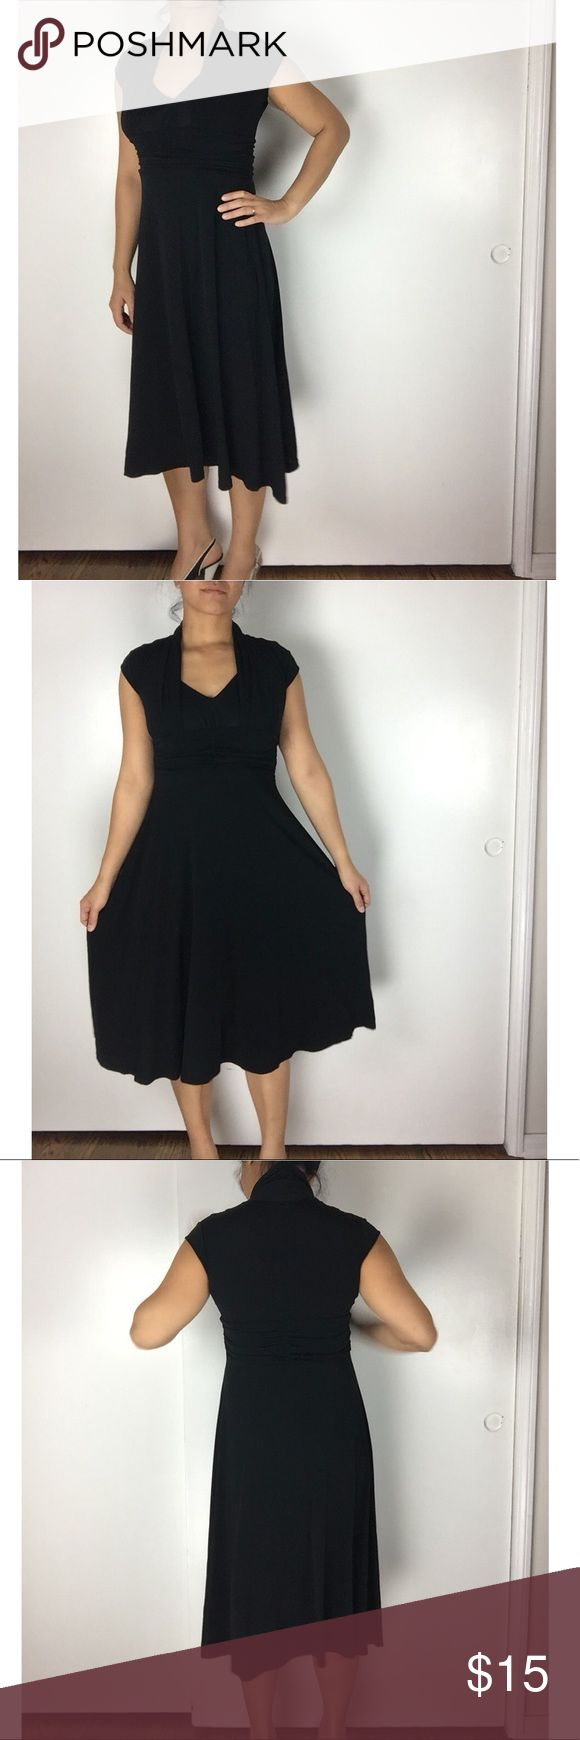 Vintage Hepburn Dress by Luly K Vintage Hepburn dress by Luly K. Used a few times but in good condition! I always felt like Audrey Hepburn when I wore it. See last photo for front detail design. Model is 5'6 and 140 lbs for reference. Stretchy material. Luly K Dresses